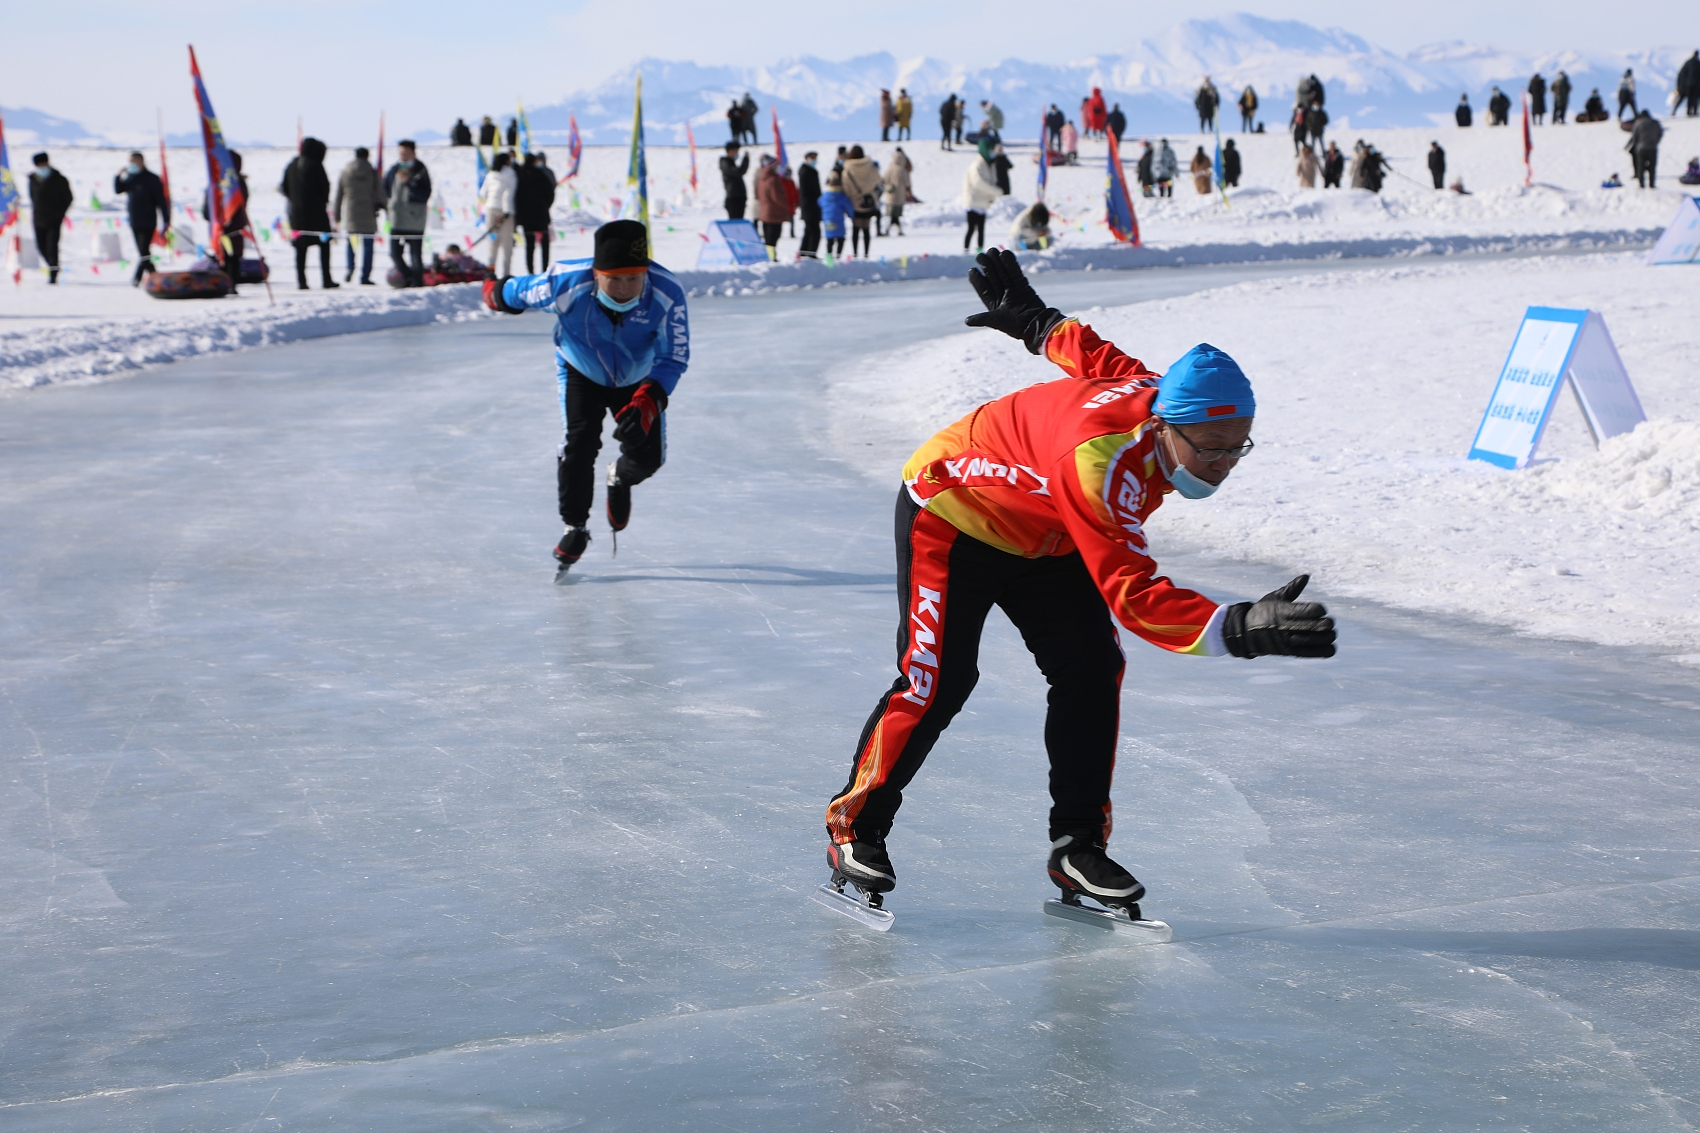 Spring Festival sees fitness activities become new trend in China